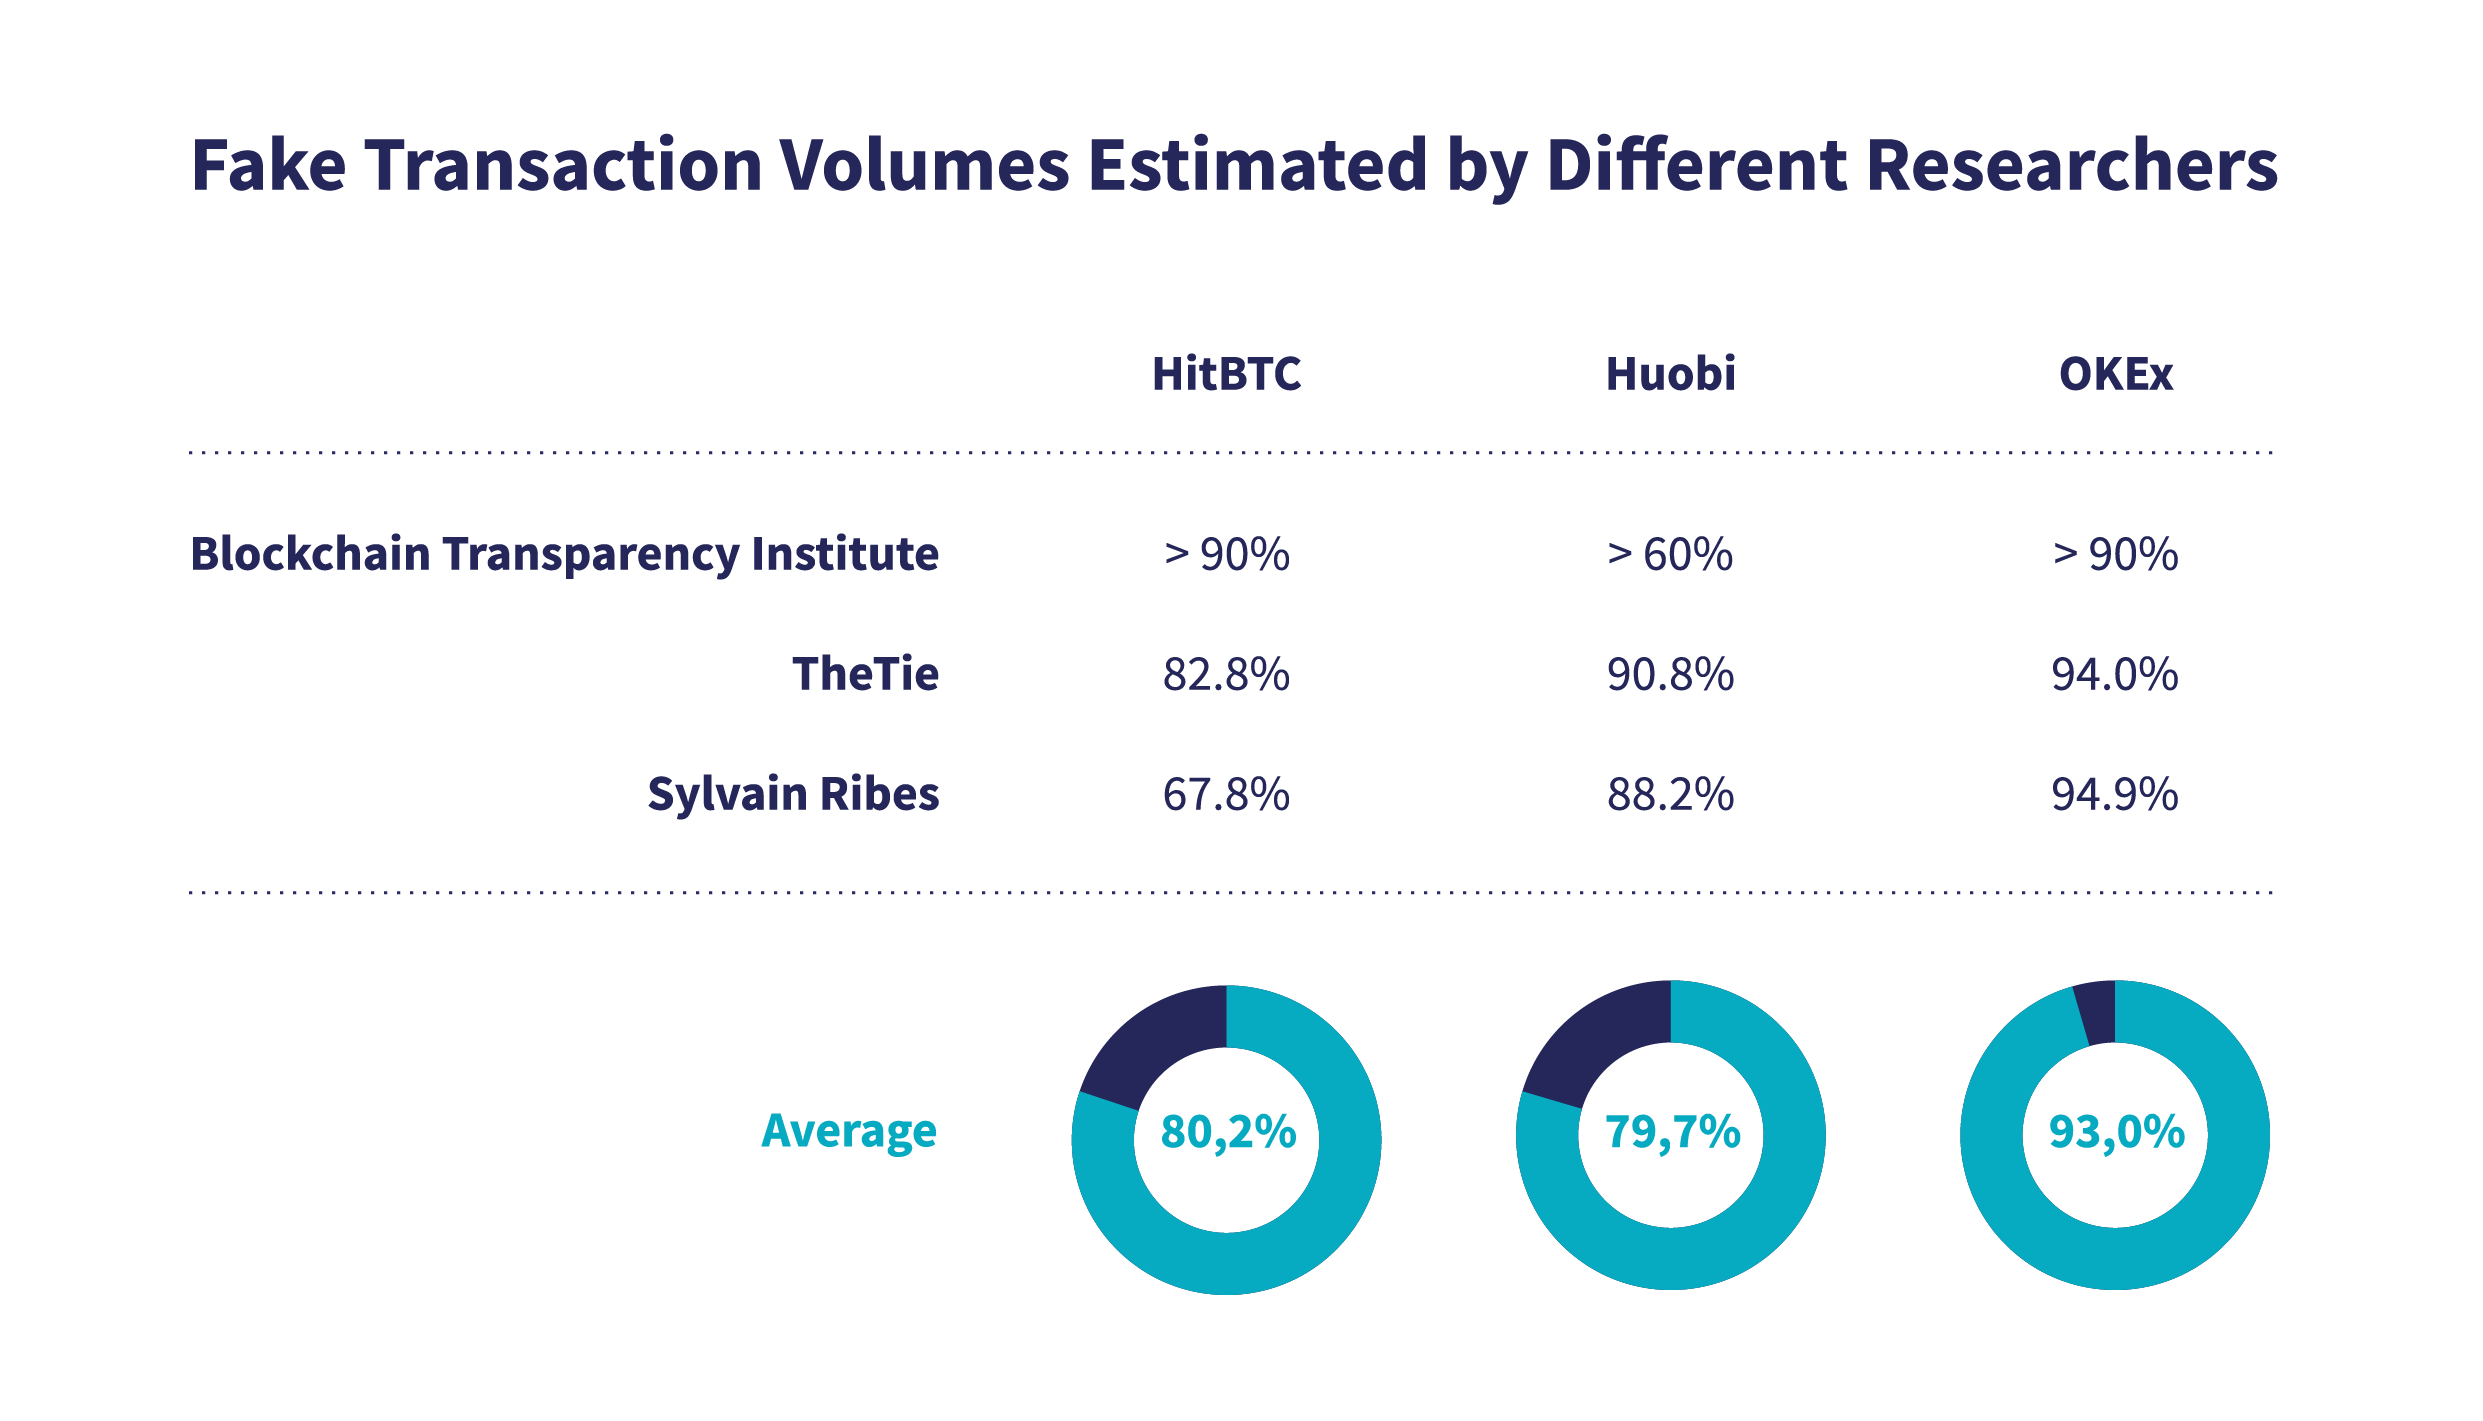 fake transaction volumes estimated by different researches